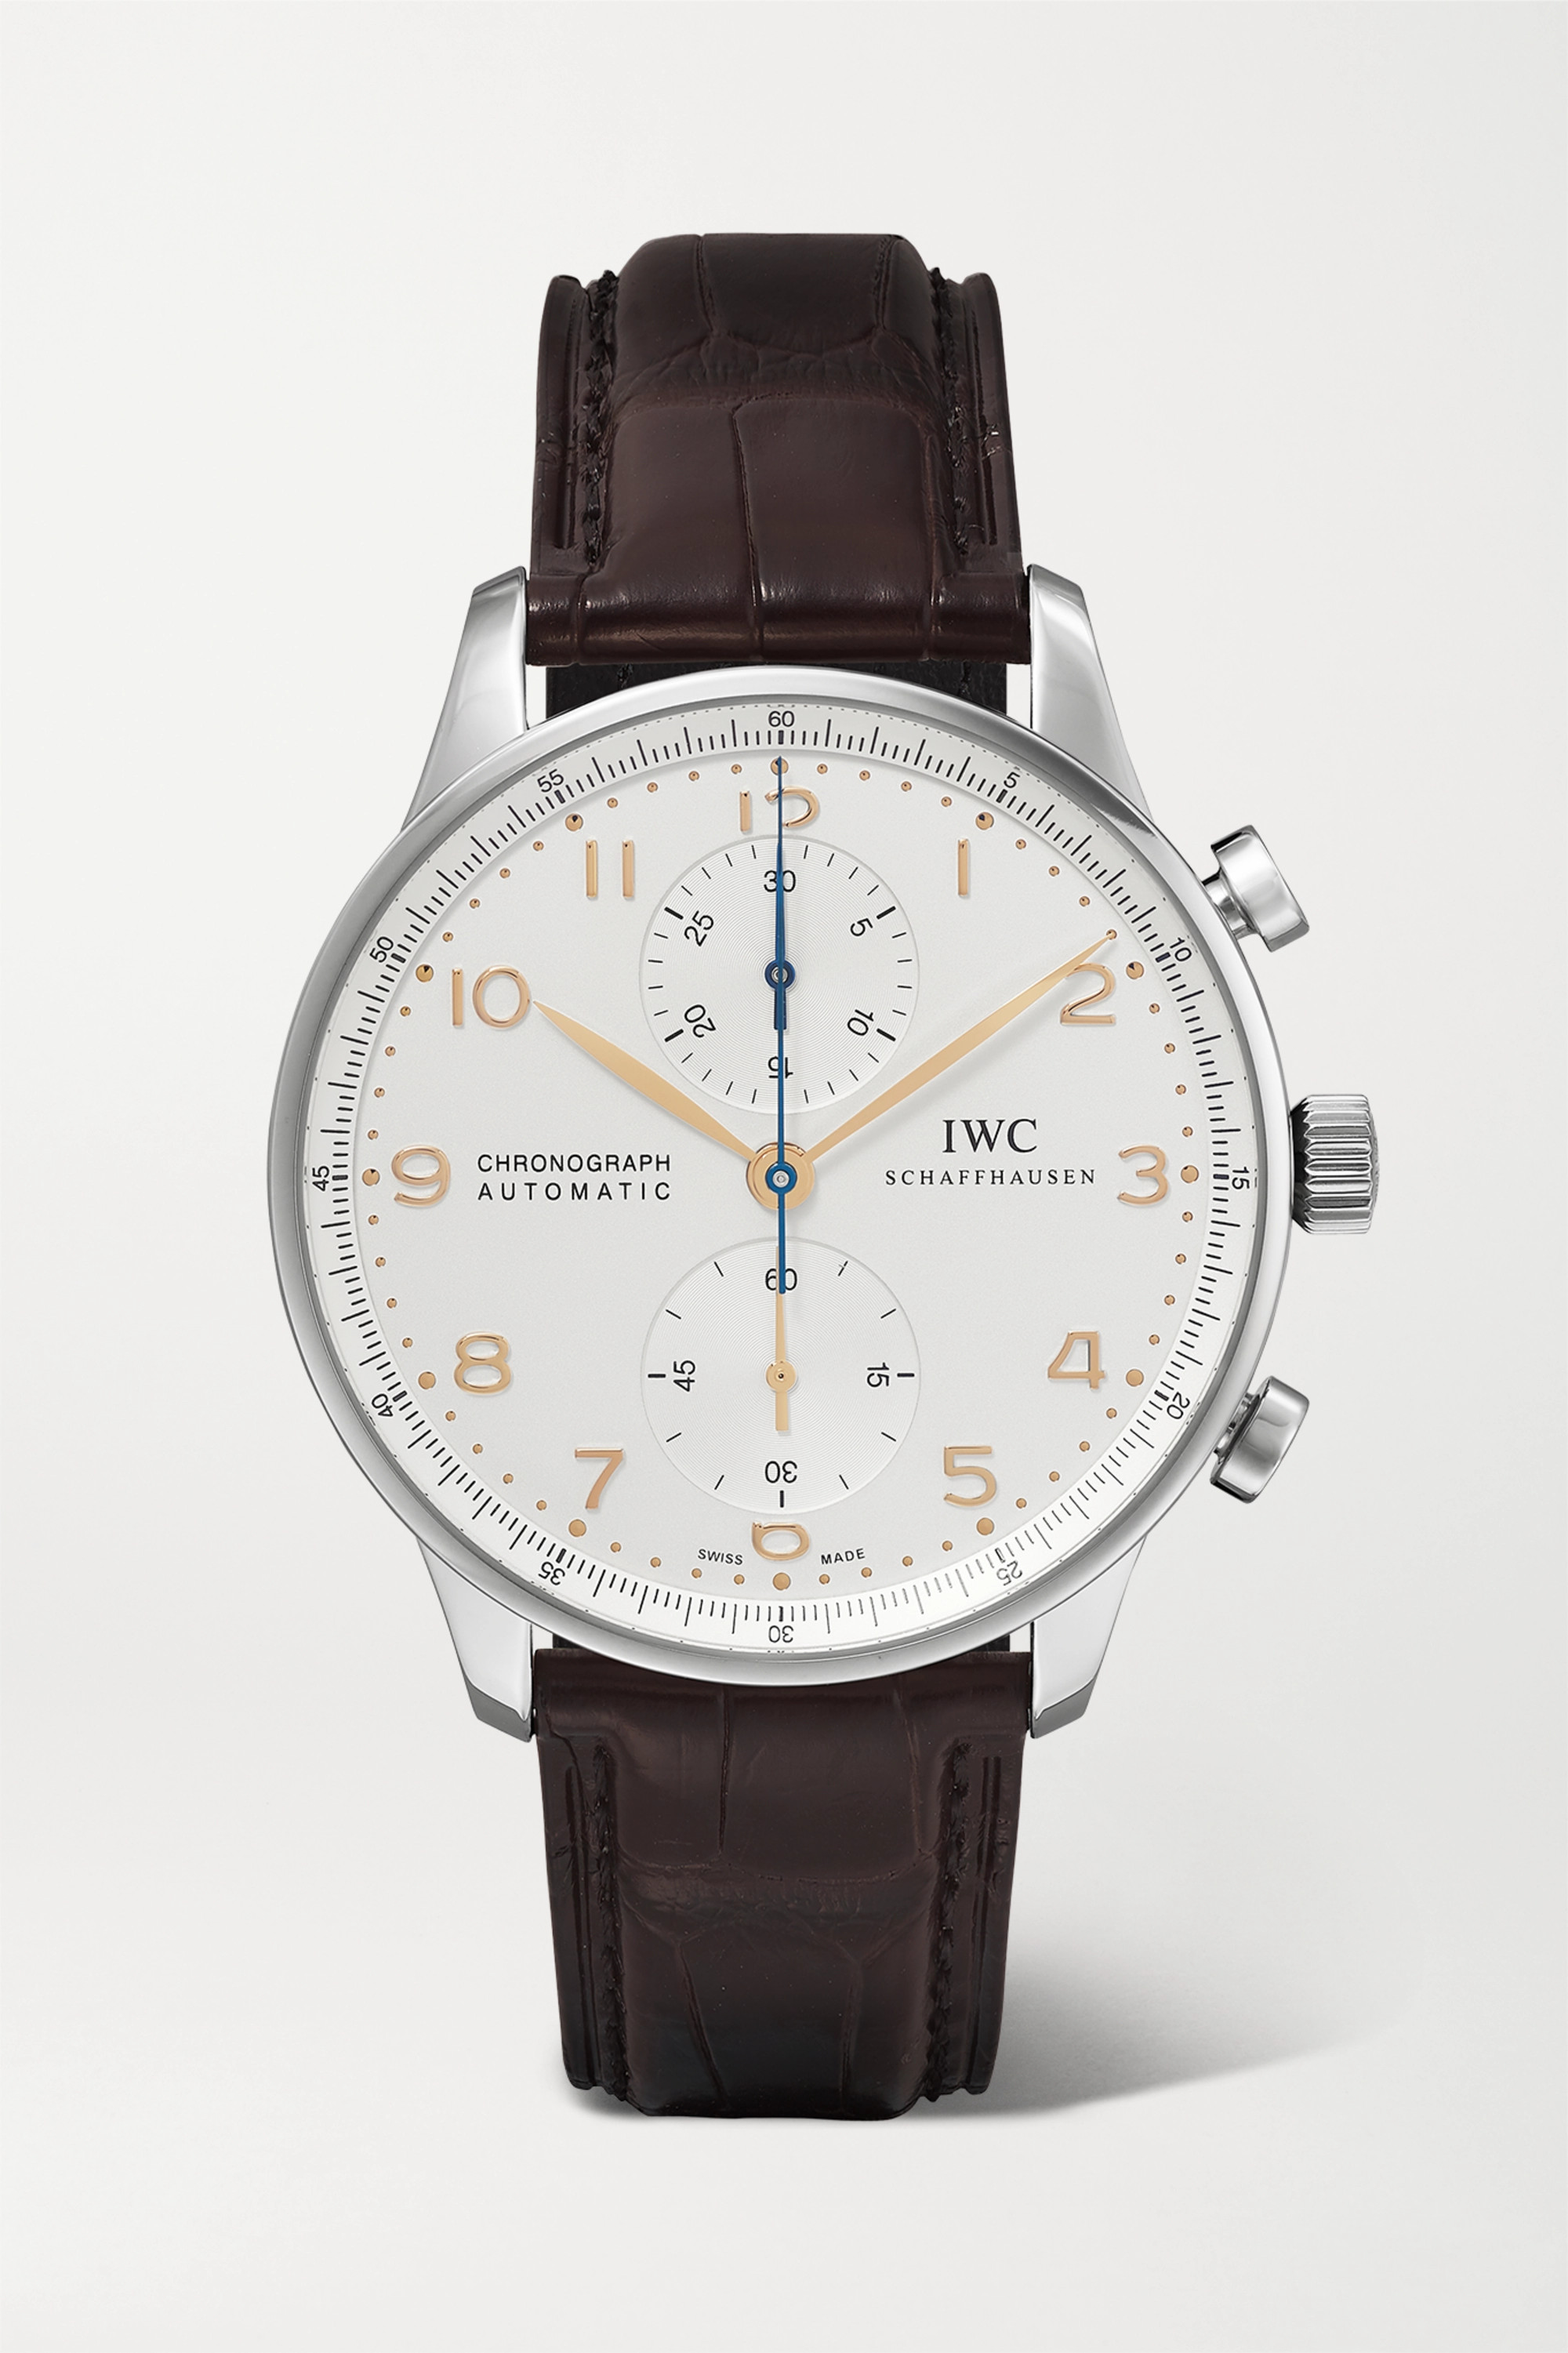 IWC SCHAFFHAUSEN Montre en acier inoxydable à bracelet en alligator Portugieser Chronograph Automatic 40,9 mm